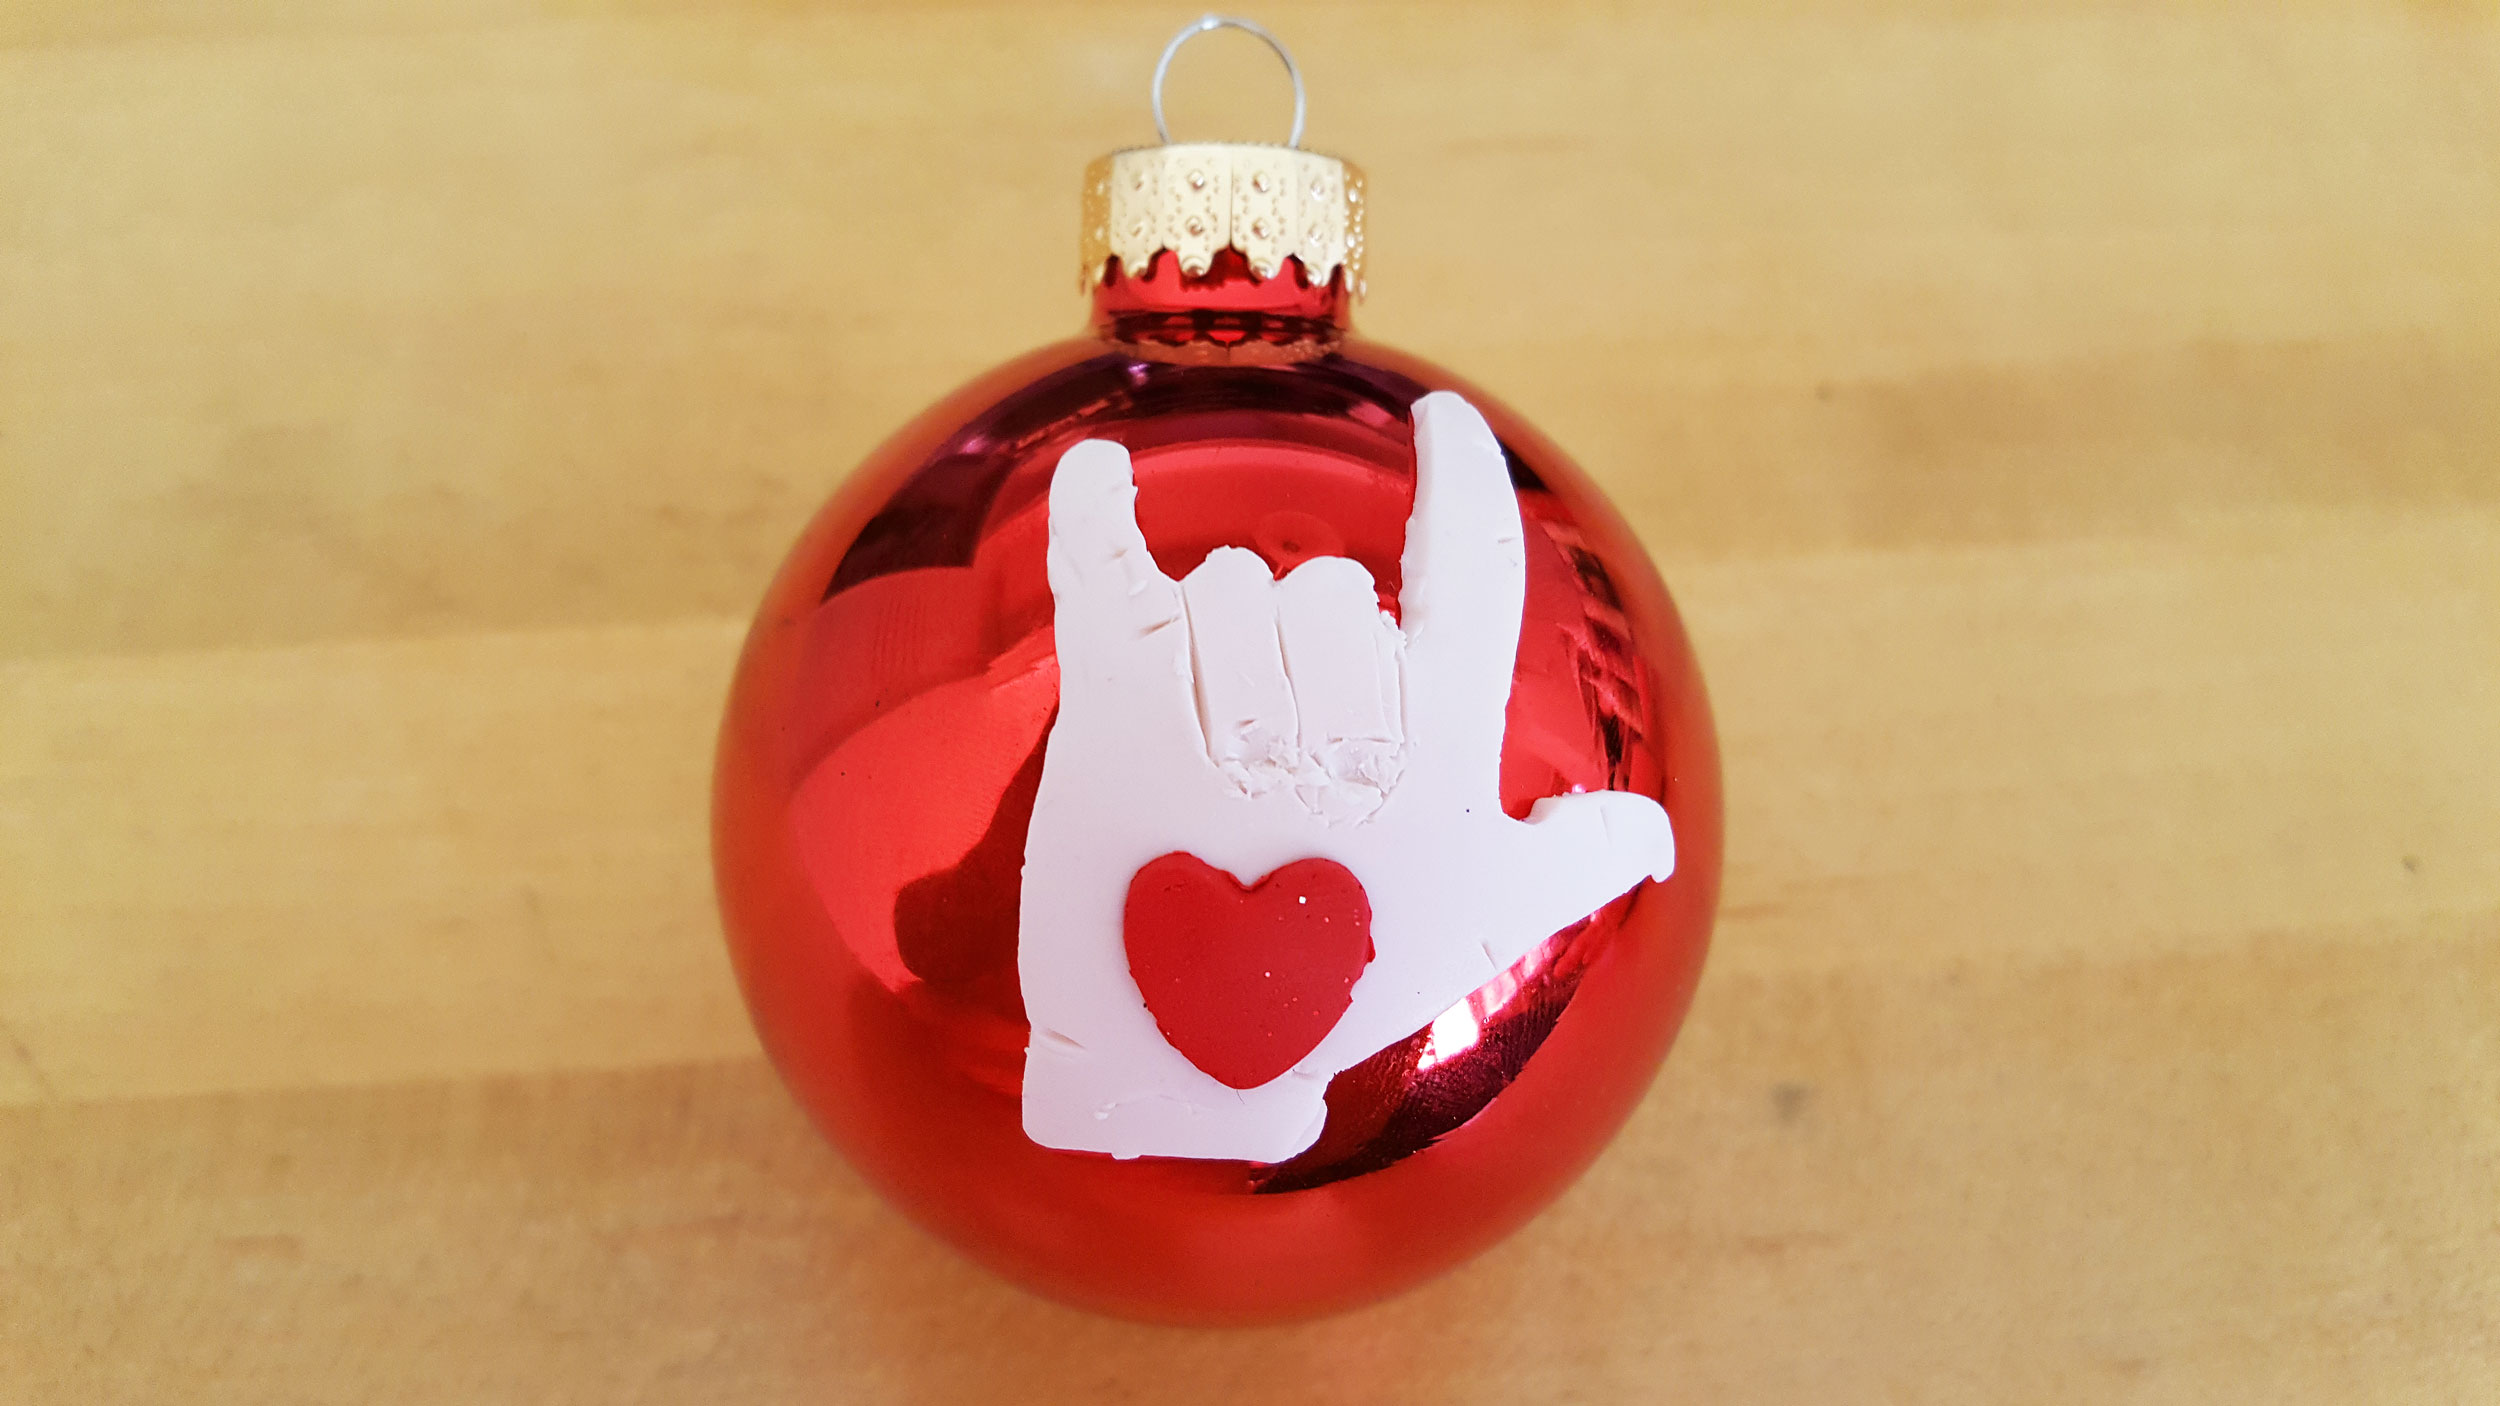 """Rock out"" hand with red heart on red glass ball ornament 